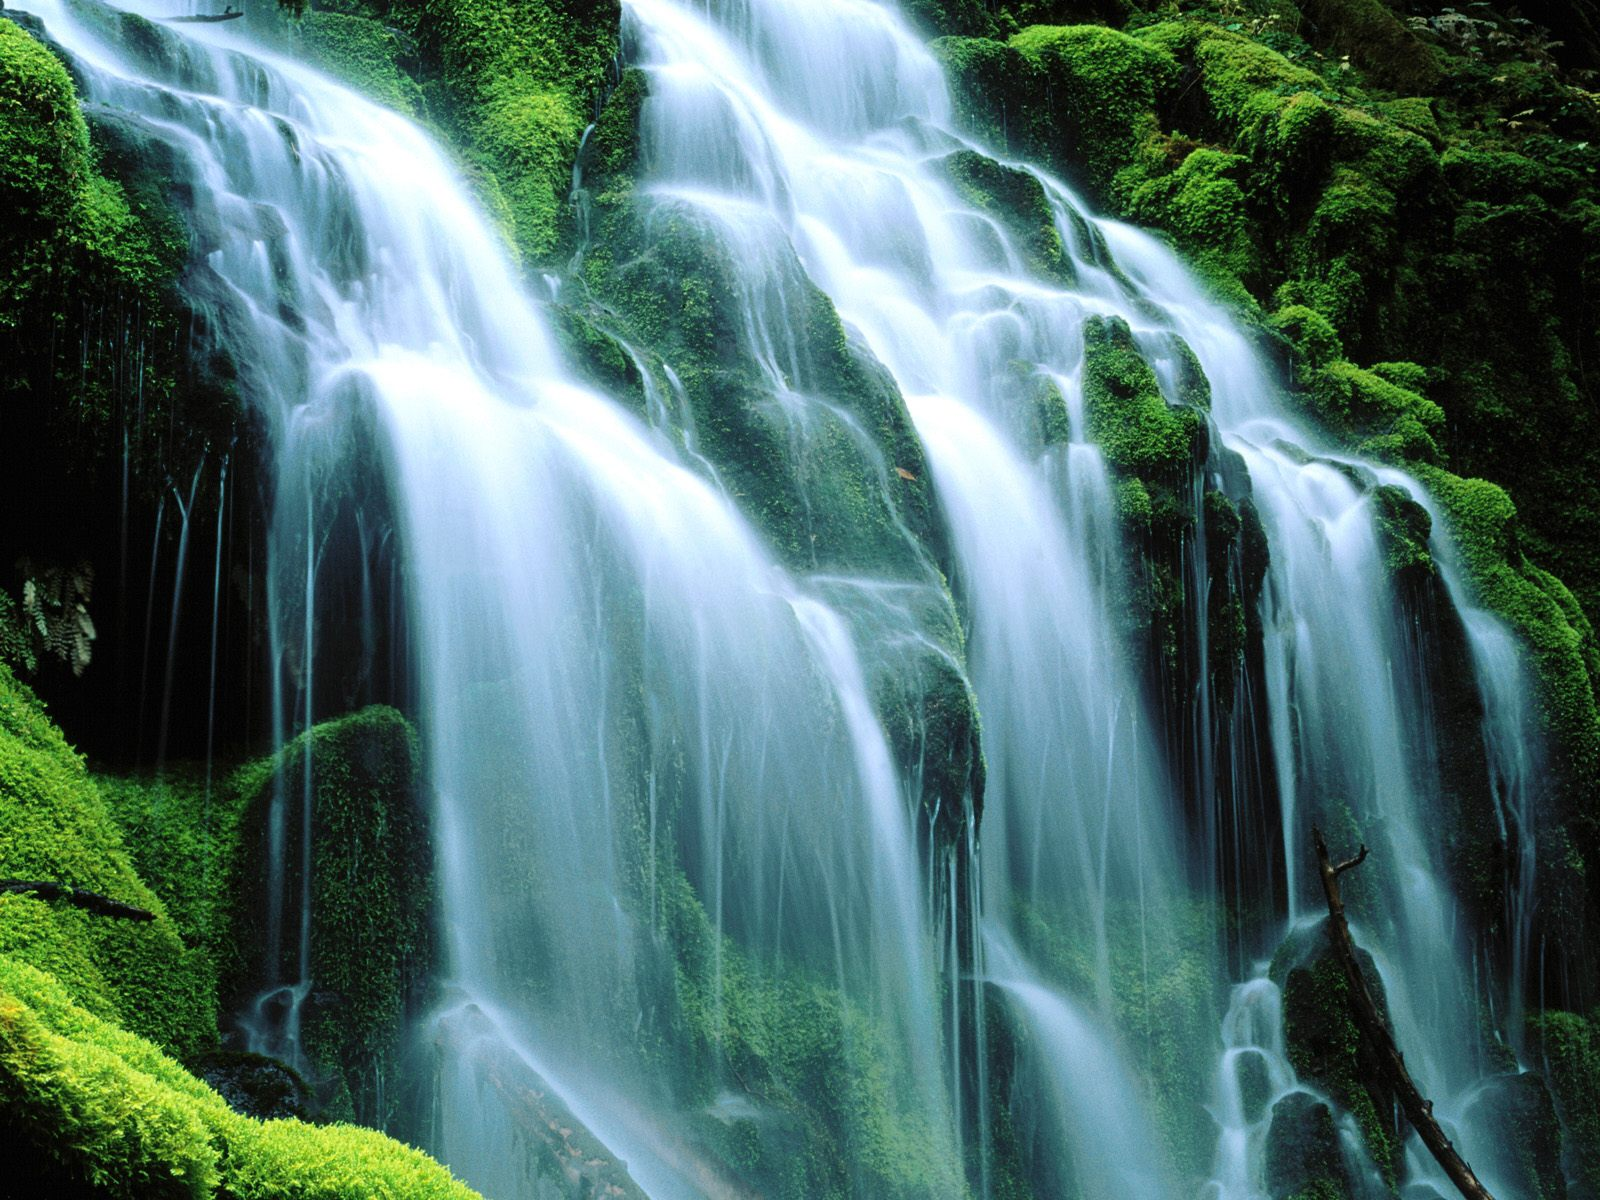 HD widescreen wallpapers New Desktop Waterfall Wallpapers 1600x1200